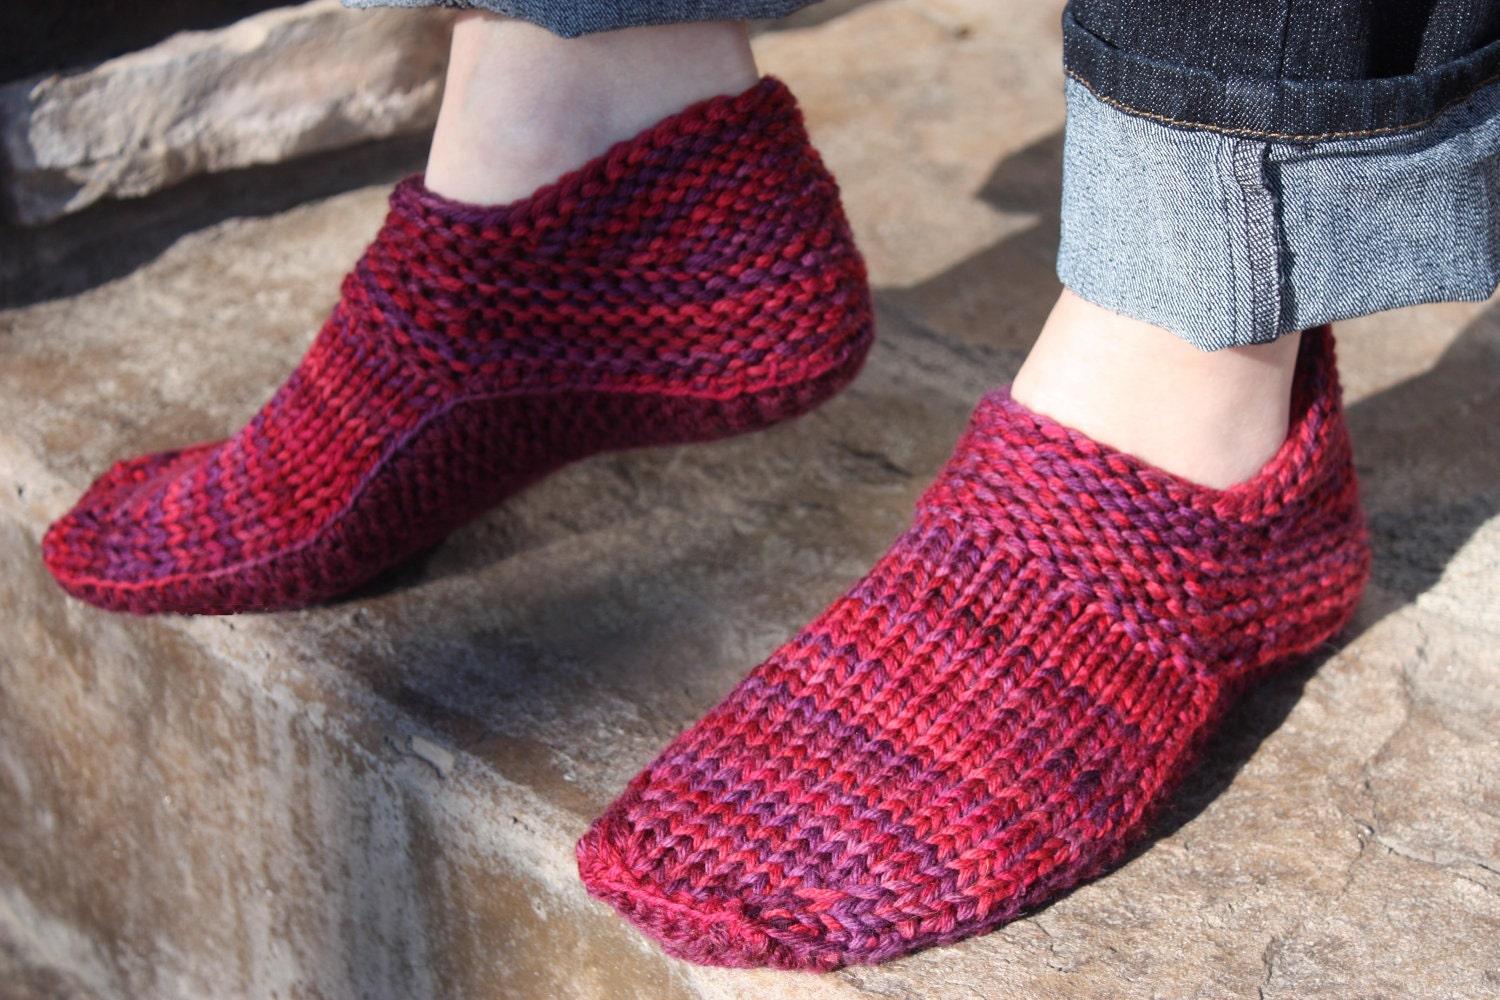 Knitting Pattern For Slippers With Soles : Options Slippers PATTERN Knit knit w/crochet plus Felting